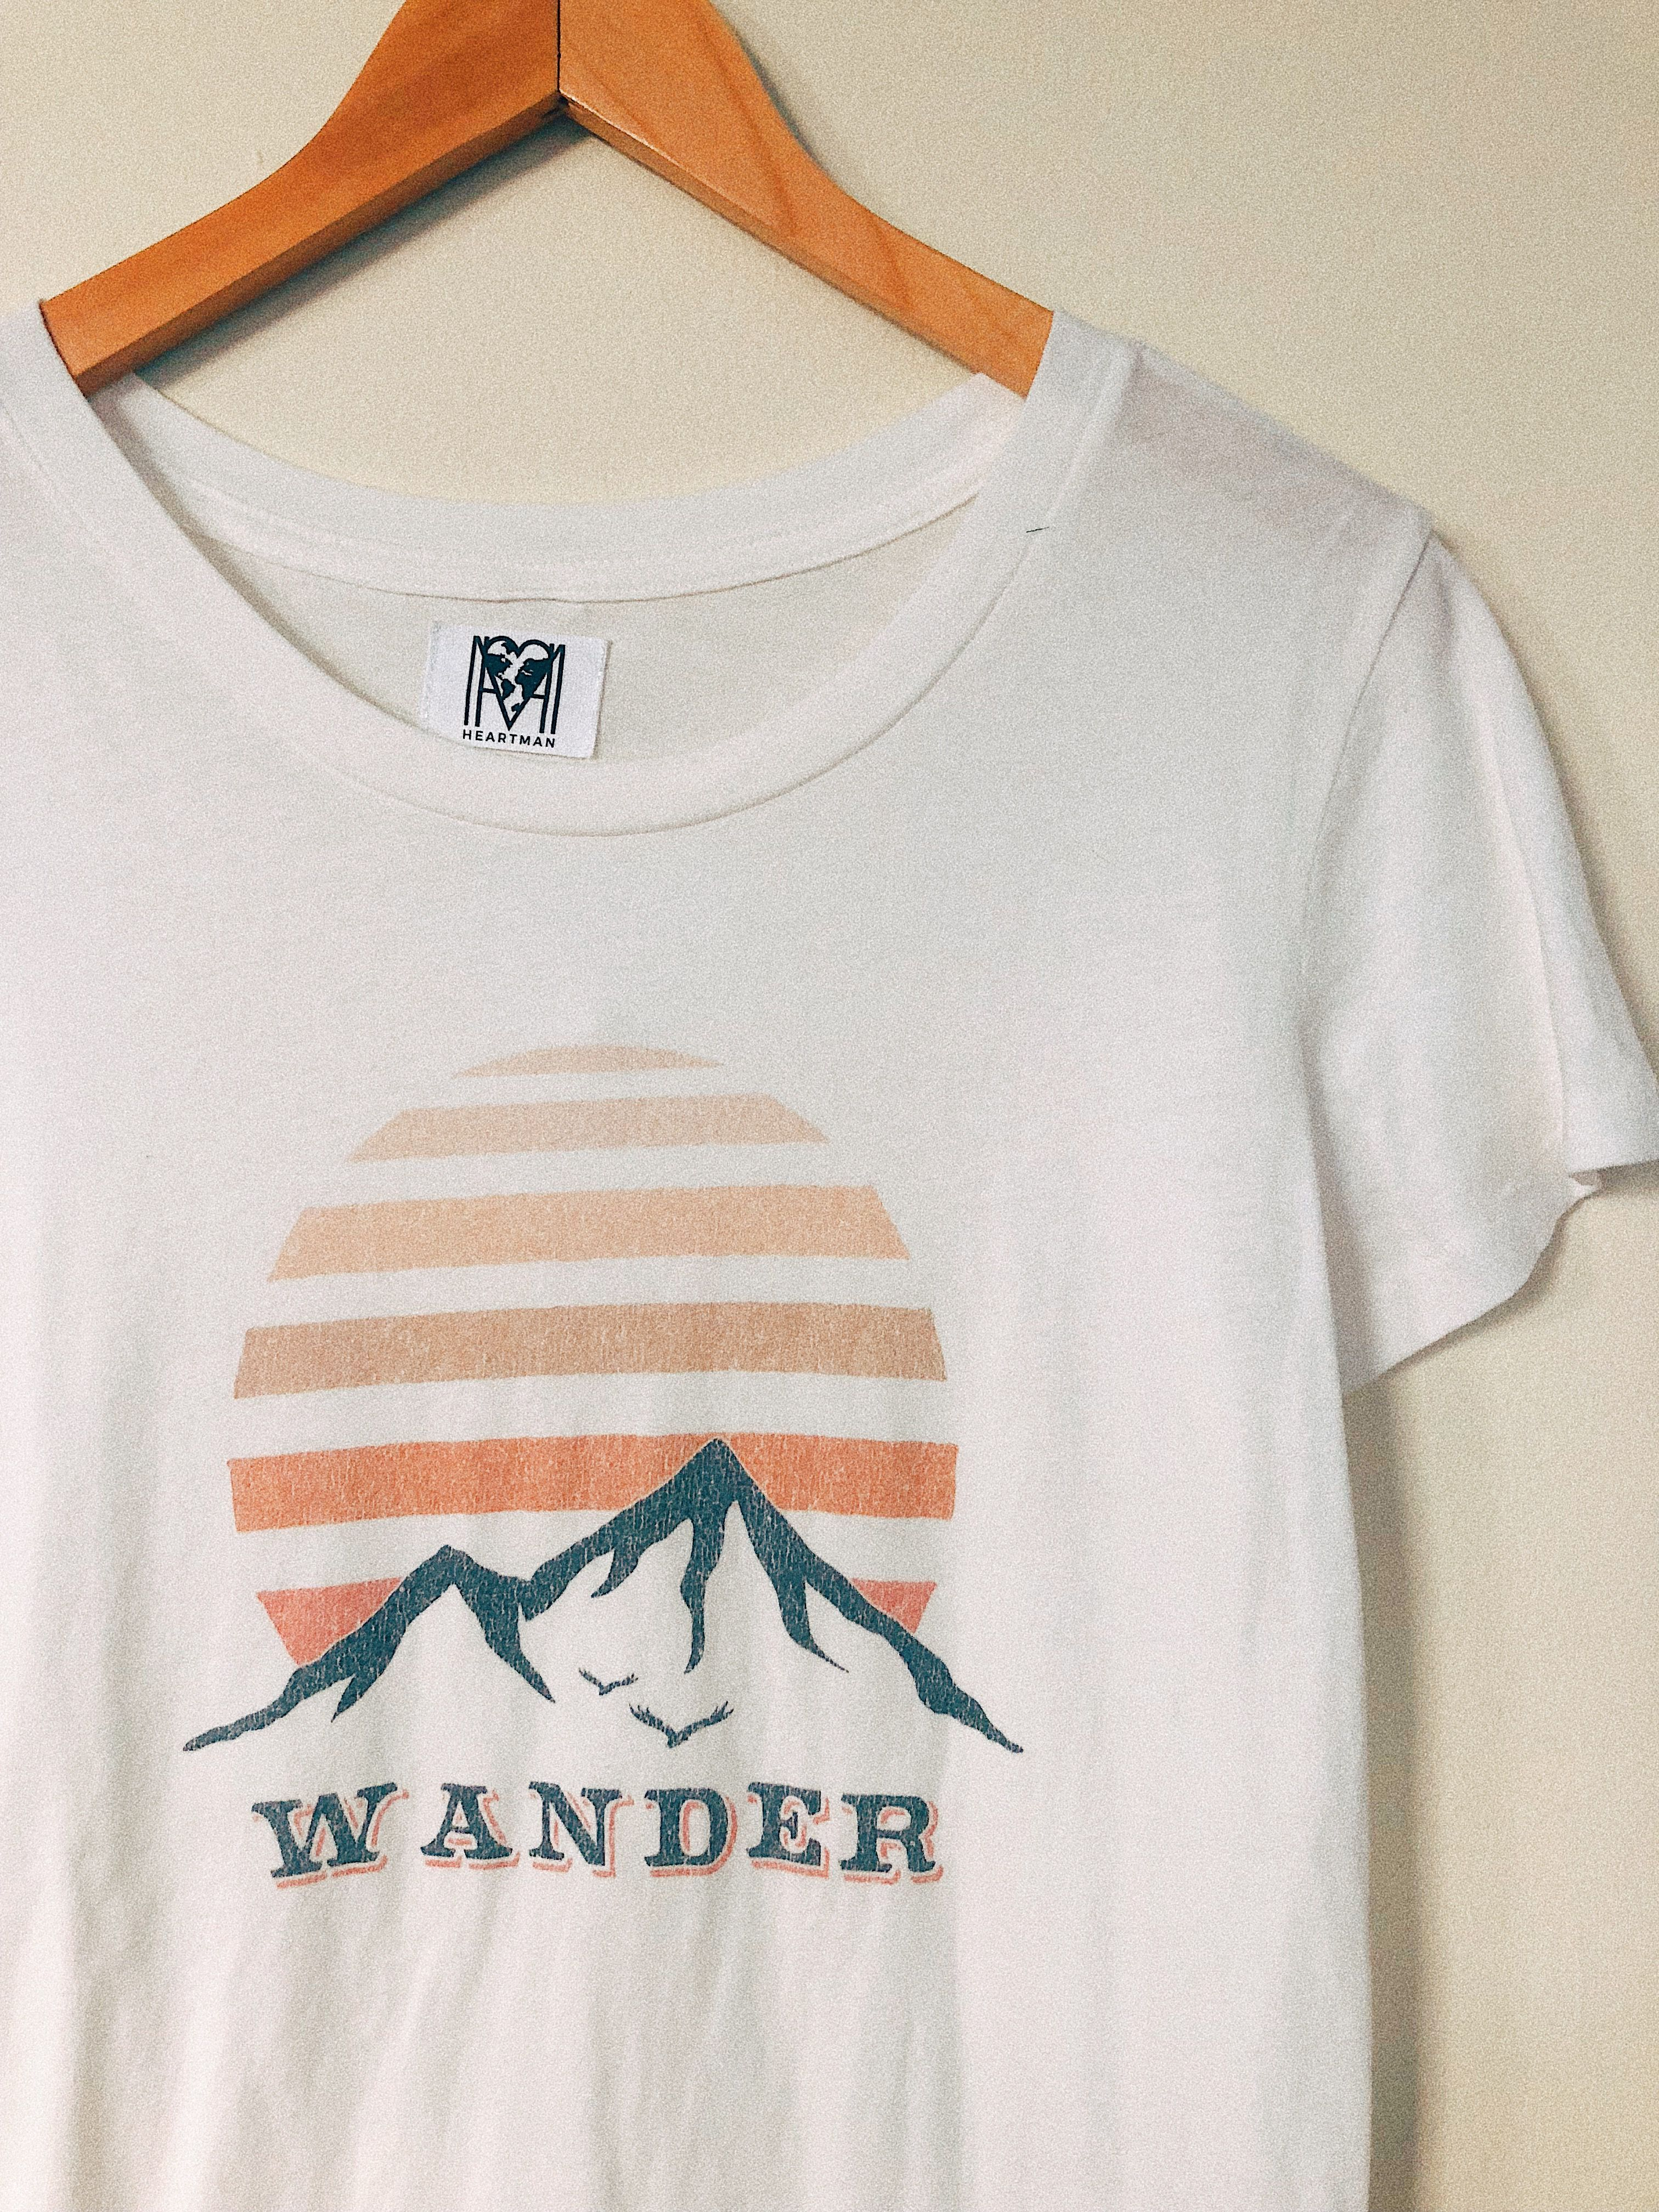 cc51b478 Our vintage inspired Wander graphic t-shirt features a peachy distressed  mountain range. #graphictee #mountain #vintage